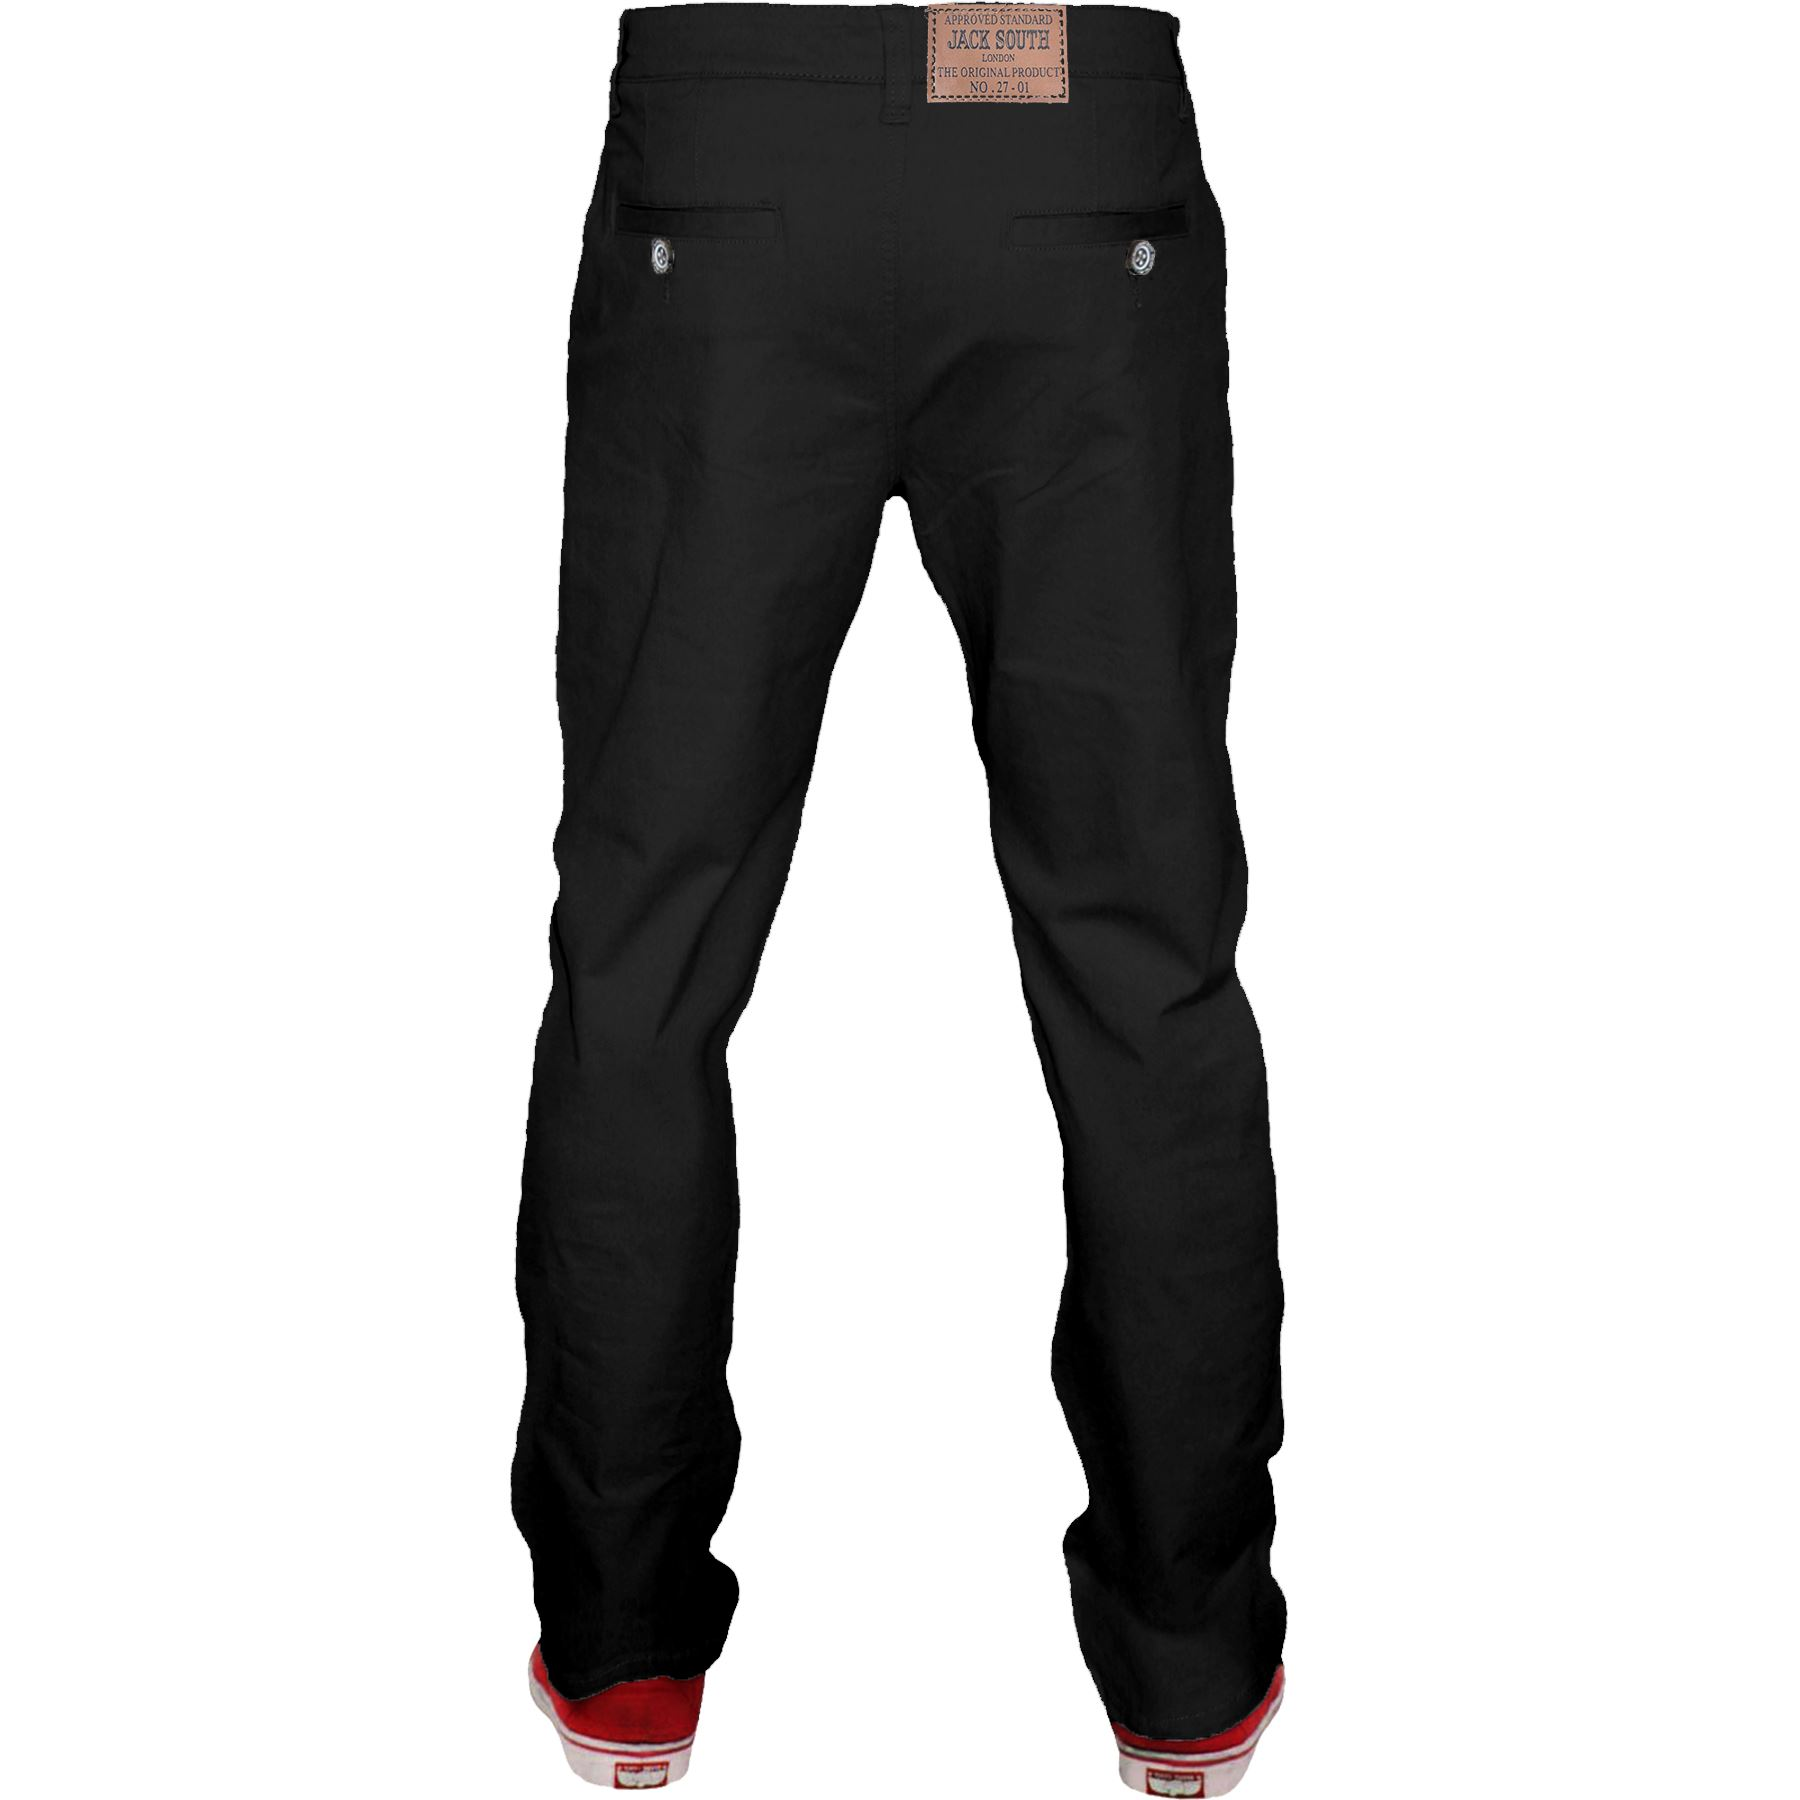 Mens-Chino-Classic-Regular-Fit-Trouser-Casual-Stretch-Spandex-Pants-Size-32-40 thumbnail 4